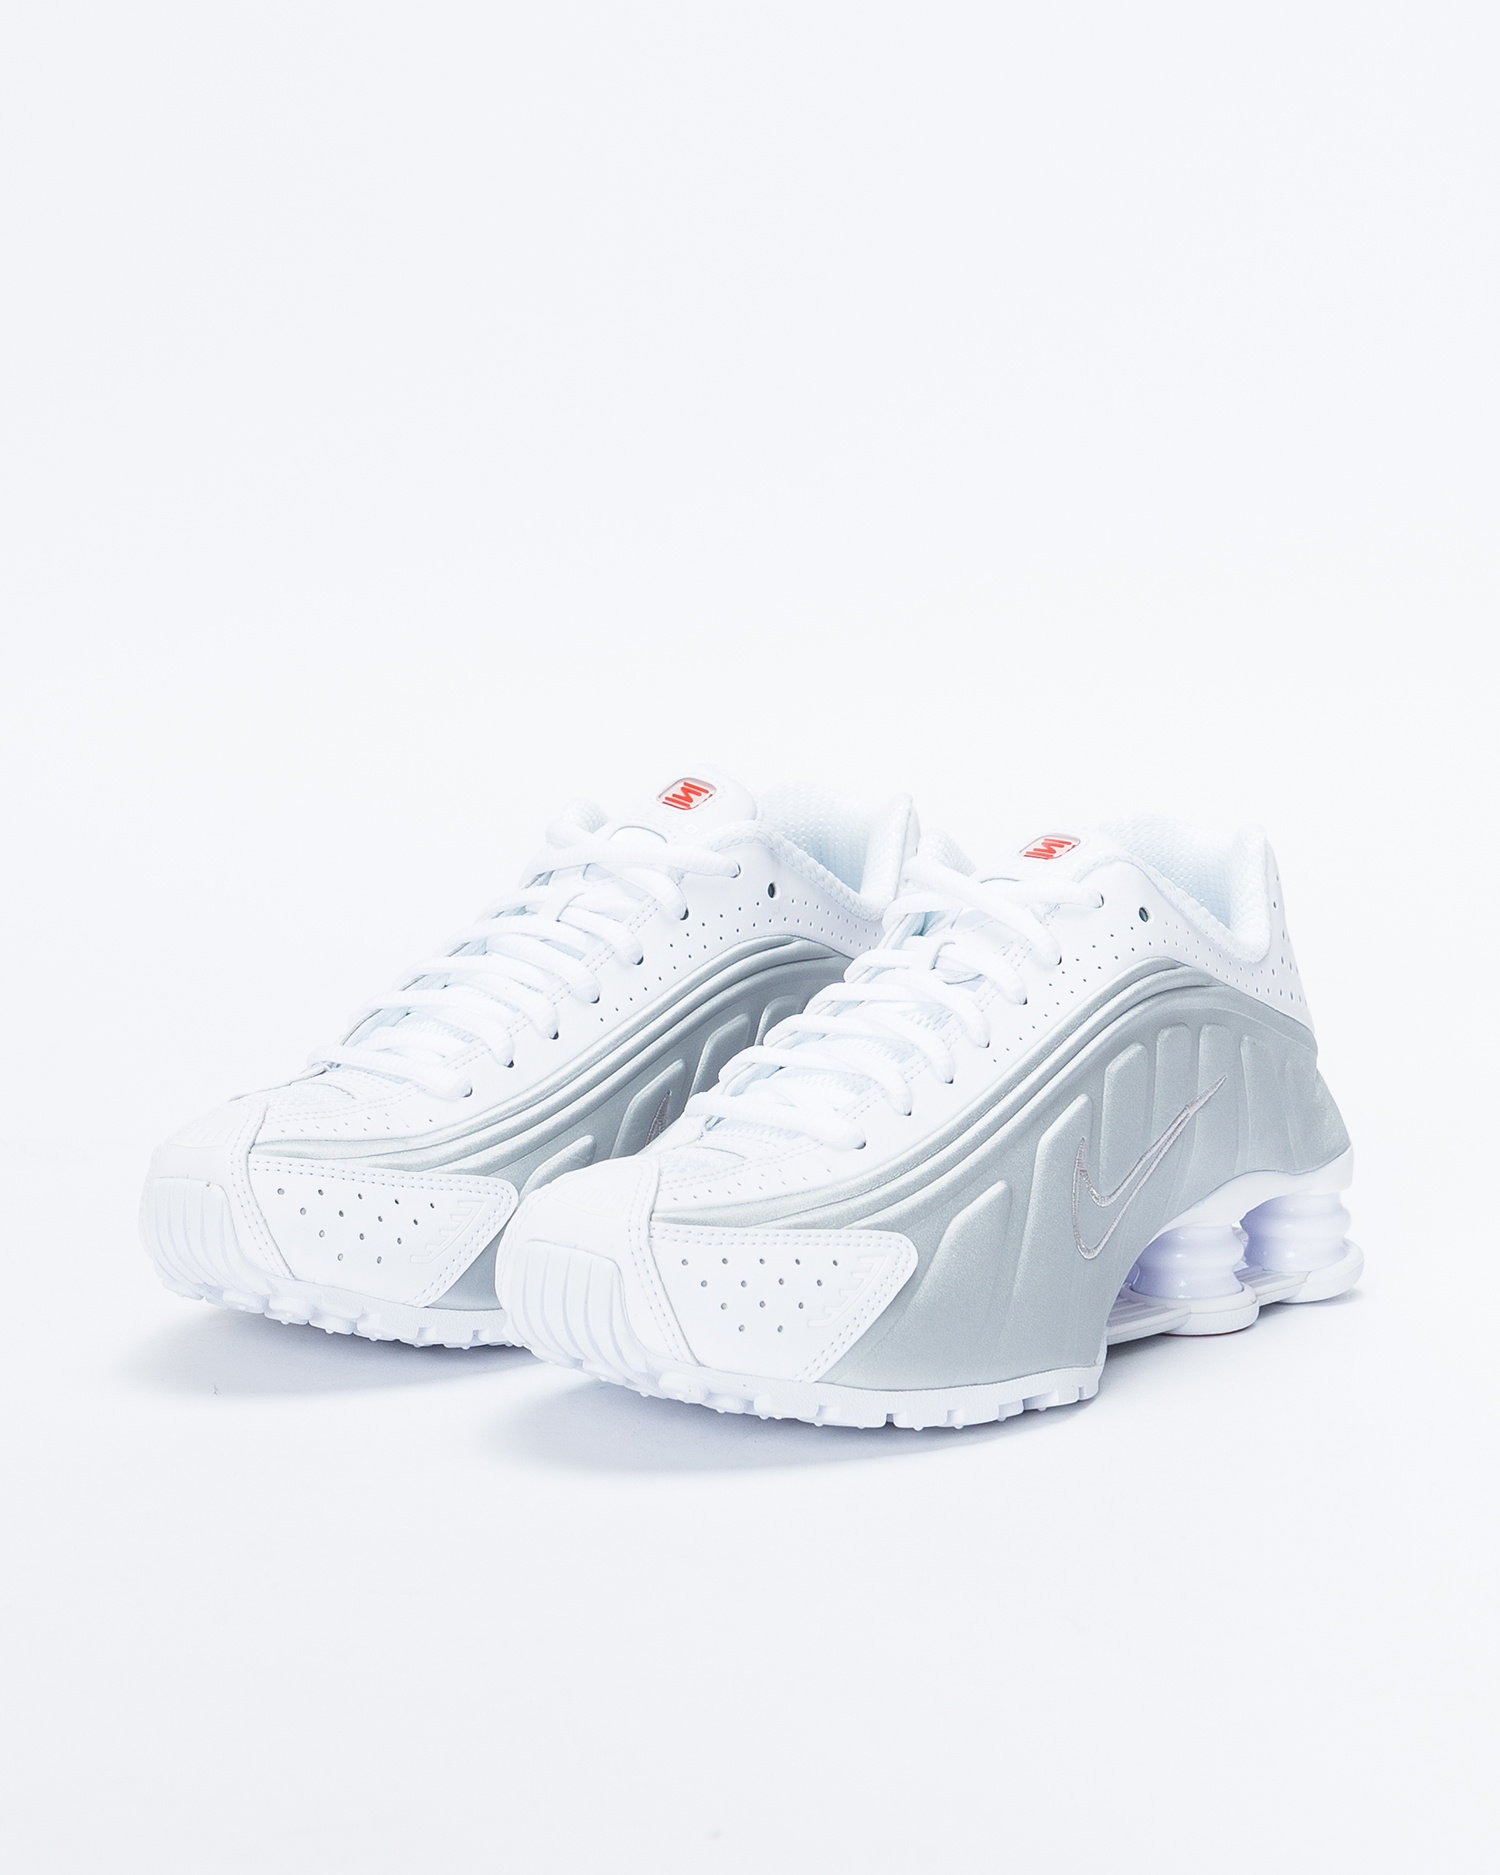 Nike Shox R4 White/White-Metallic Silver-Max Orange